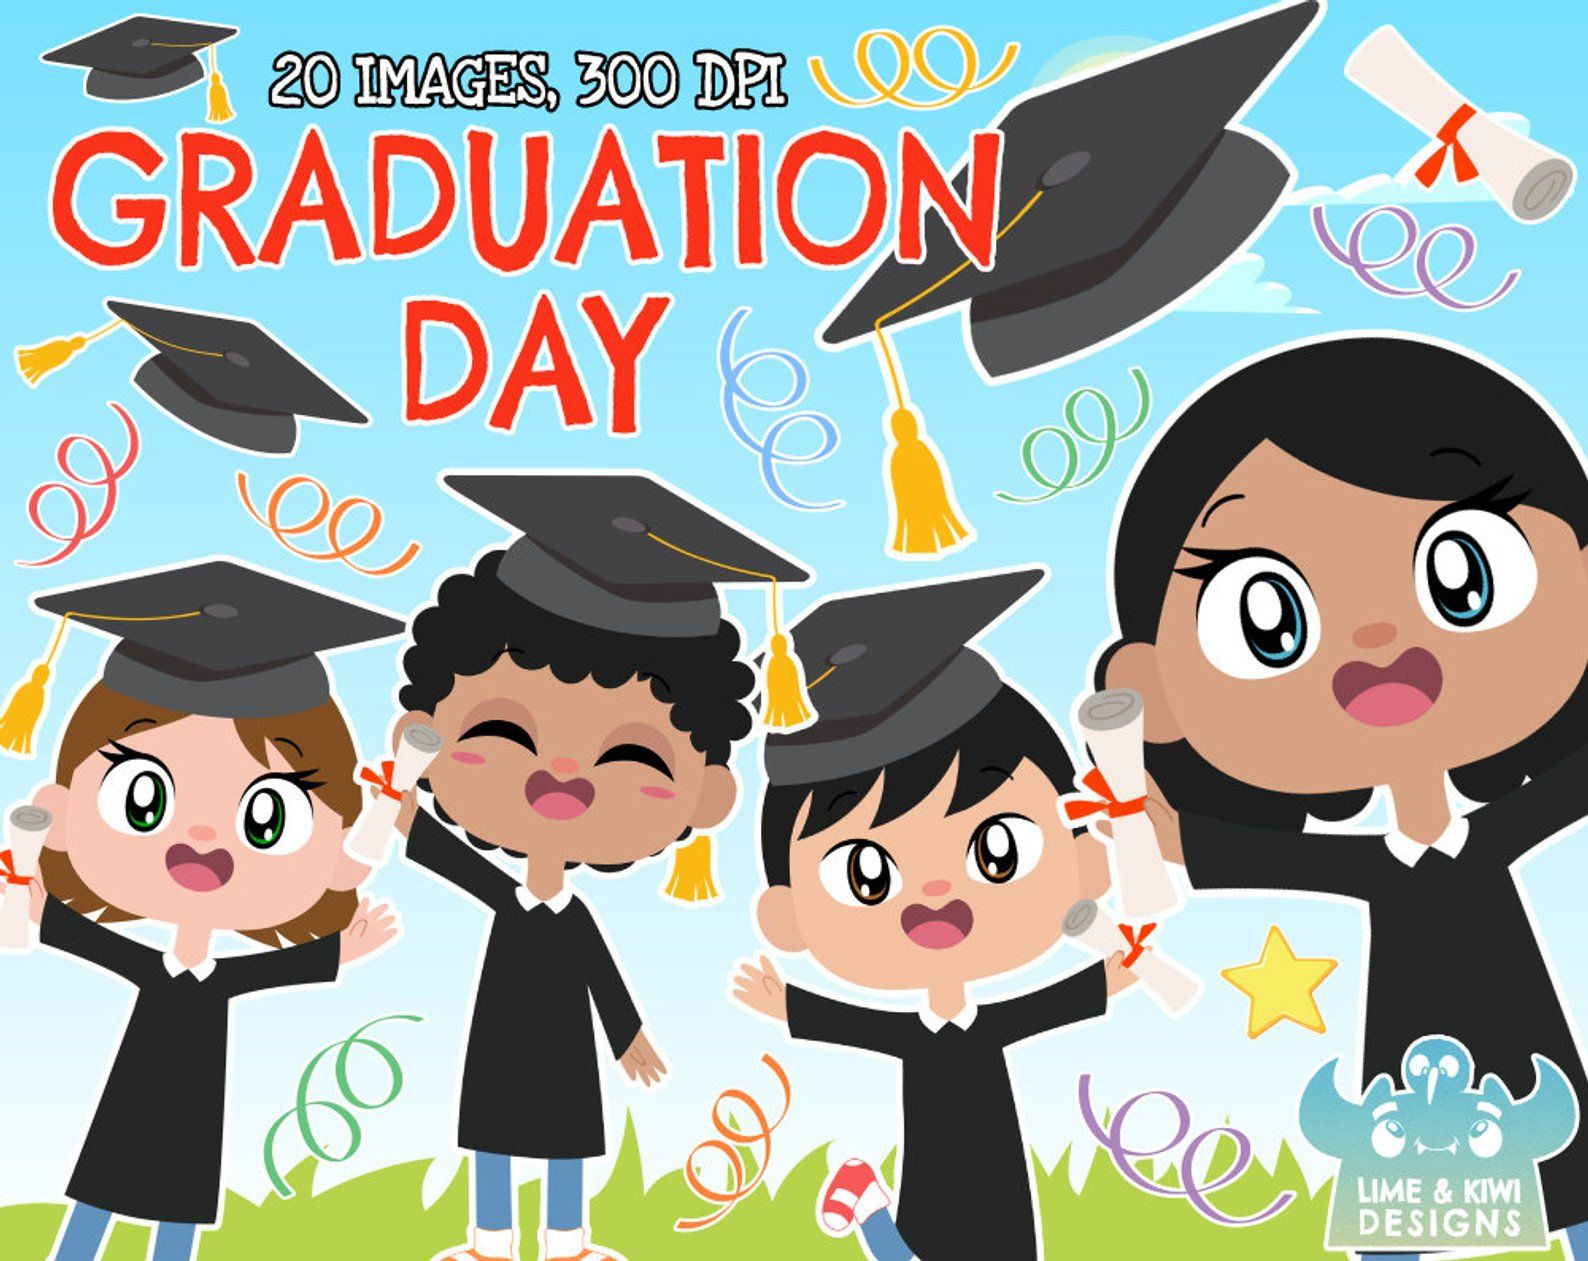 Graduation Day Clipart, Instant Download Vector Art.